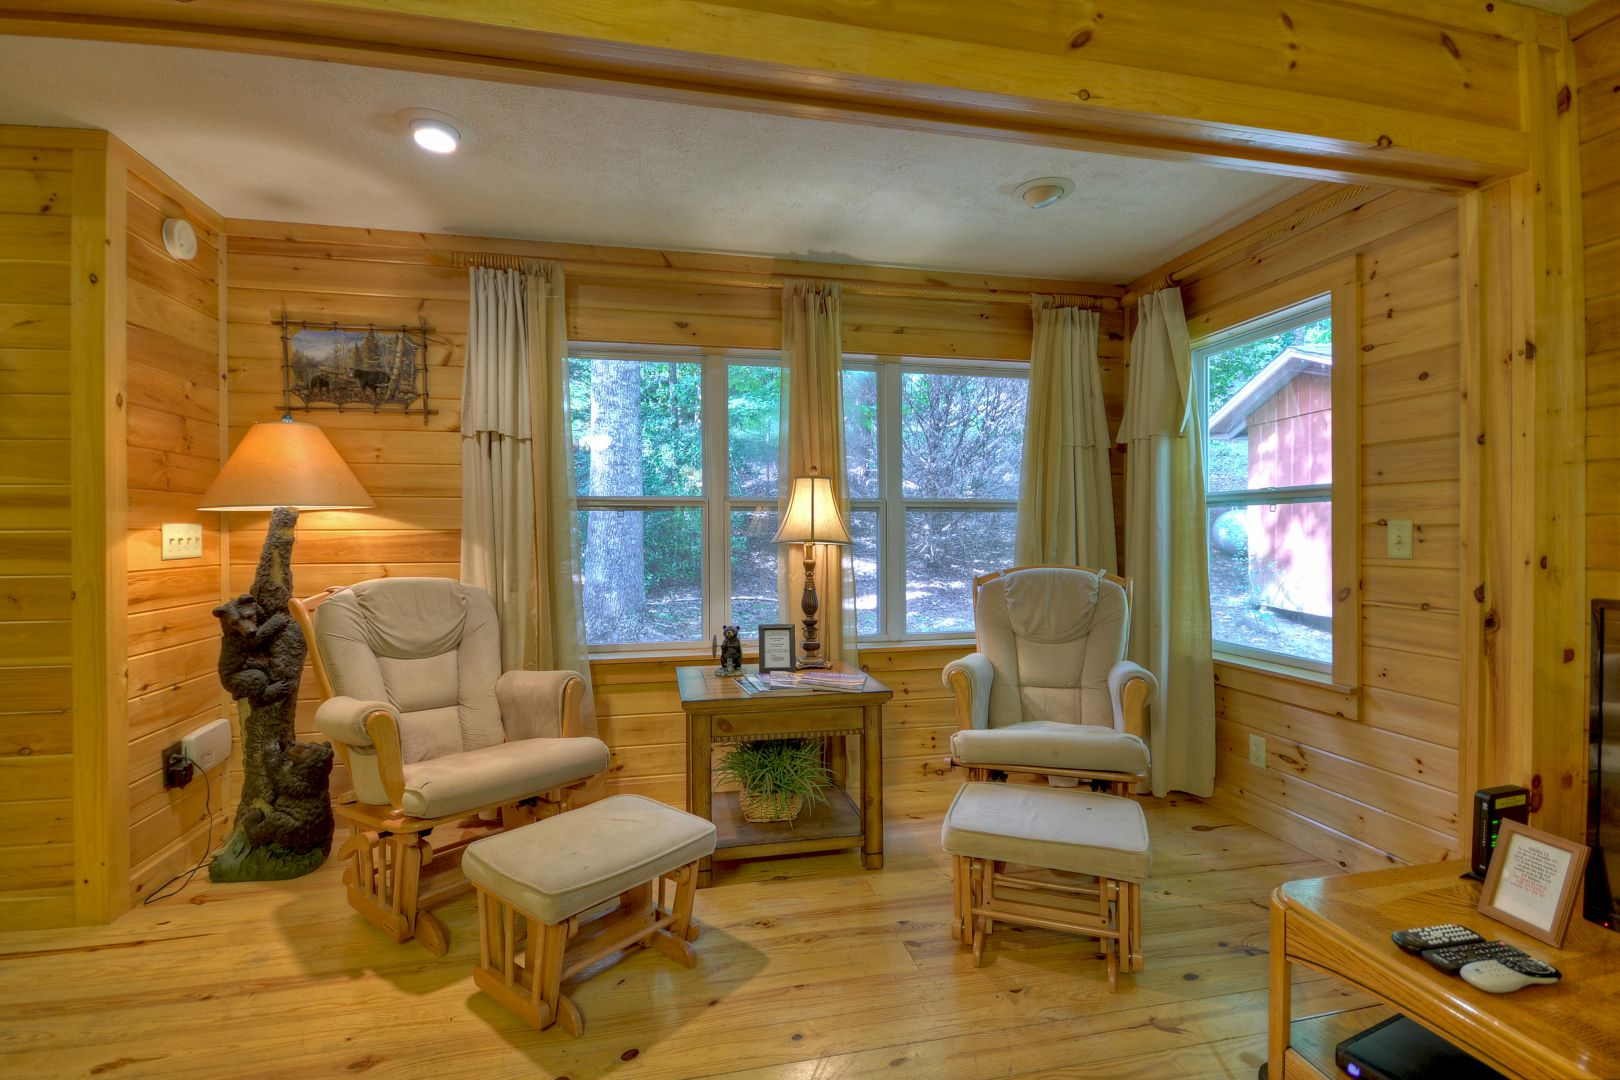 Toccoa River Escape Rental Cabin Cuddle Up Cabin Rentals